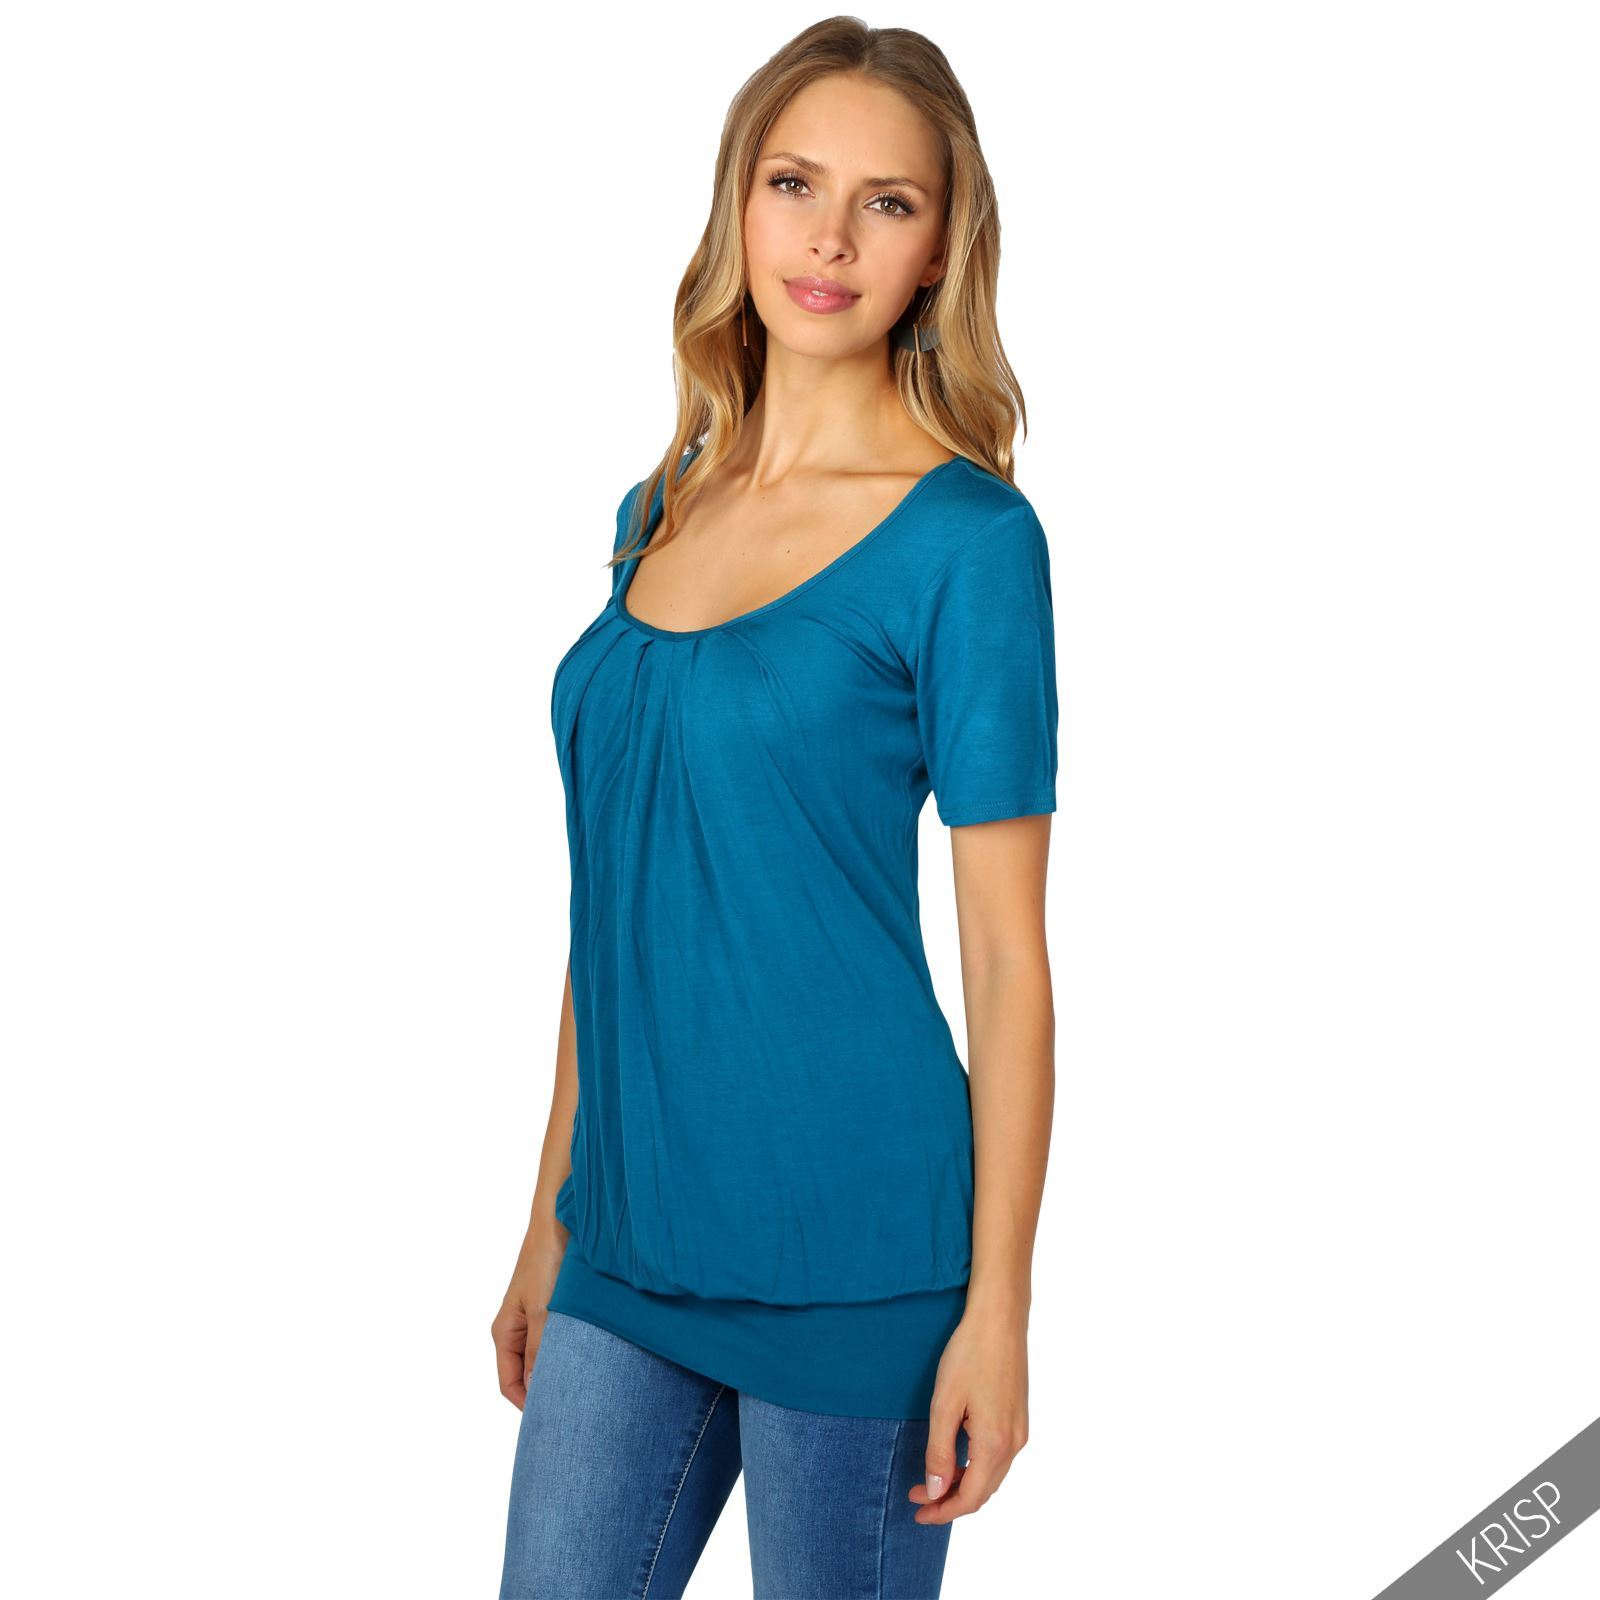 Womens-Ladies-Pleated-T-Shirt-Long-Blouse-Loose-Jersey-Top-Plain-Tunic-Plus-8-20 thumbnail 14